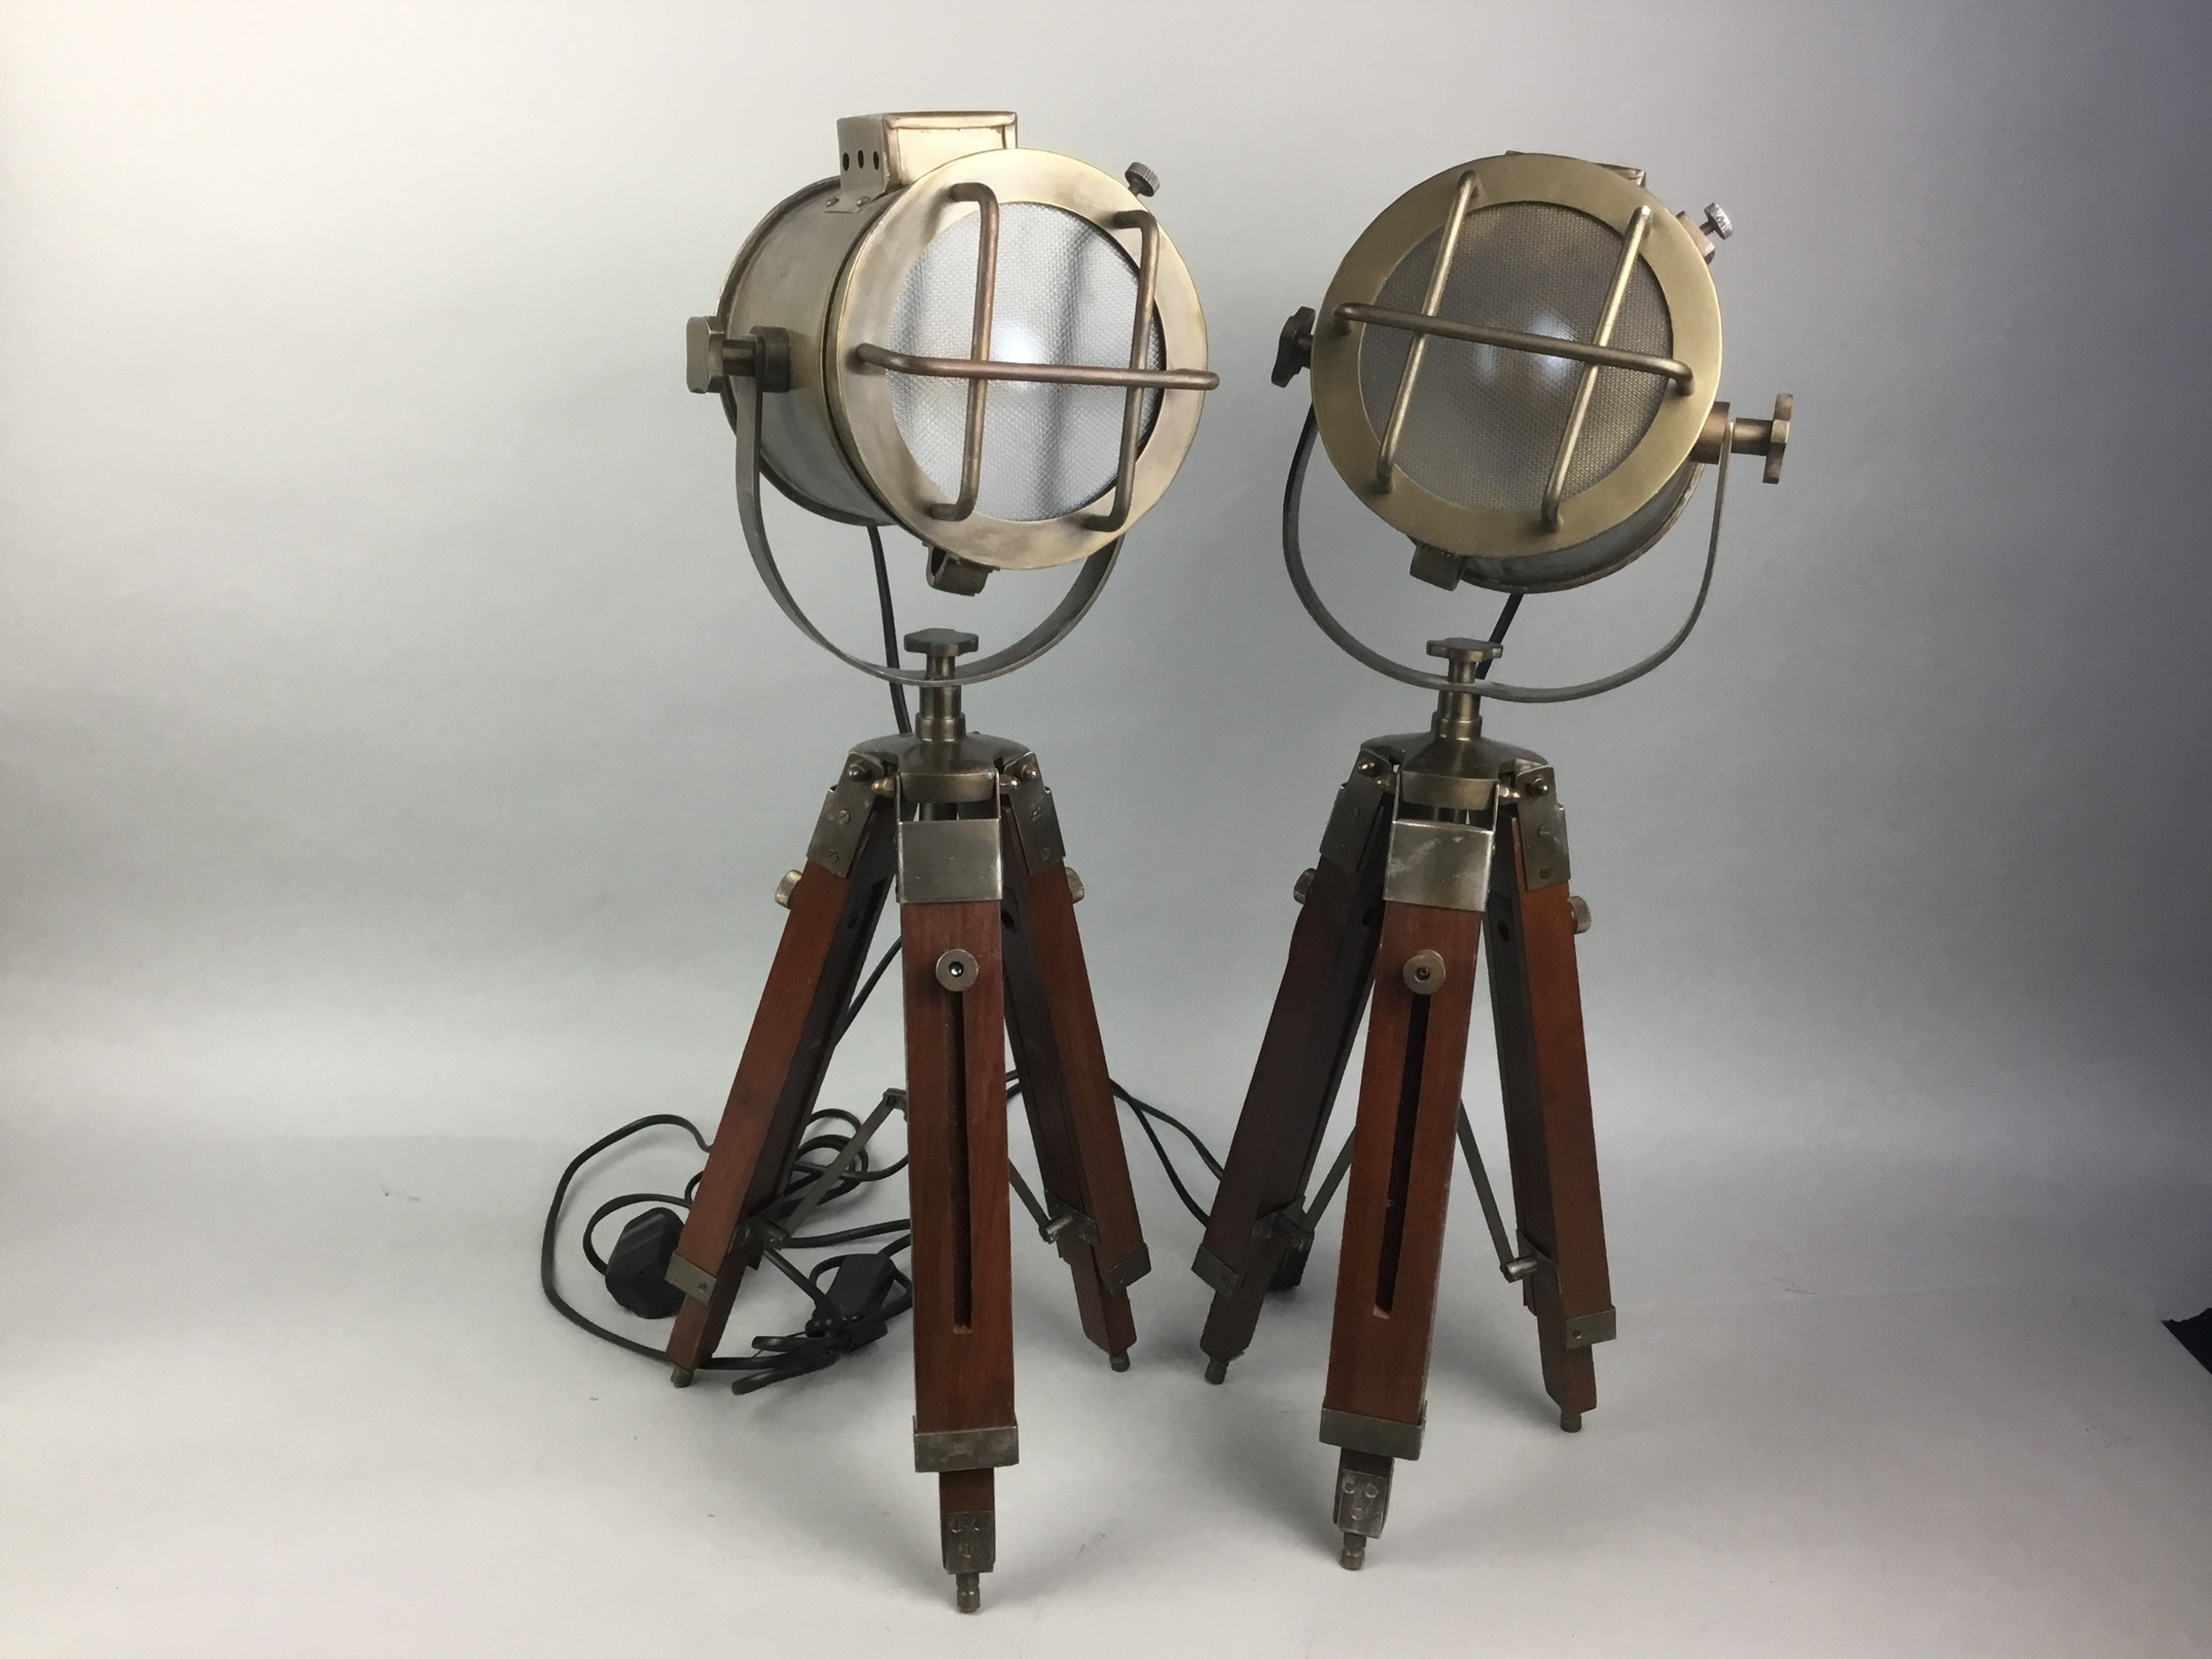 A PAIR OF BRASS MARINE TABLE LAMPS